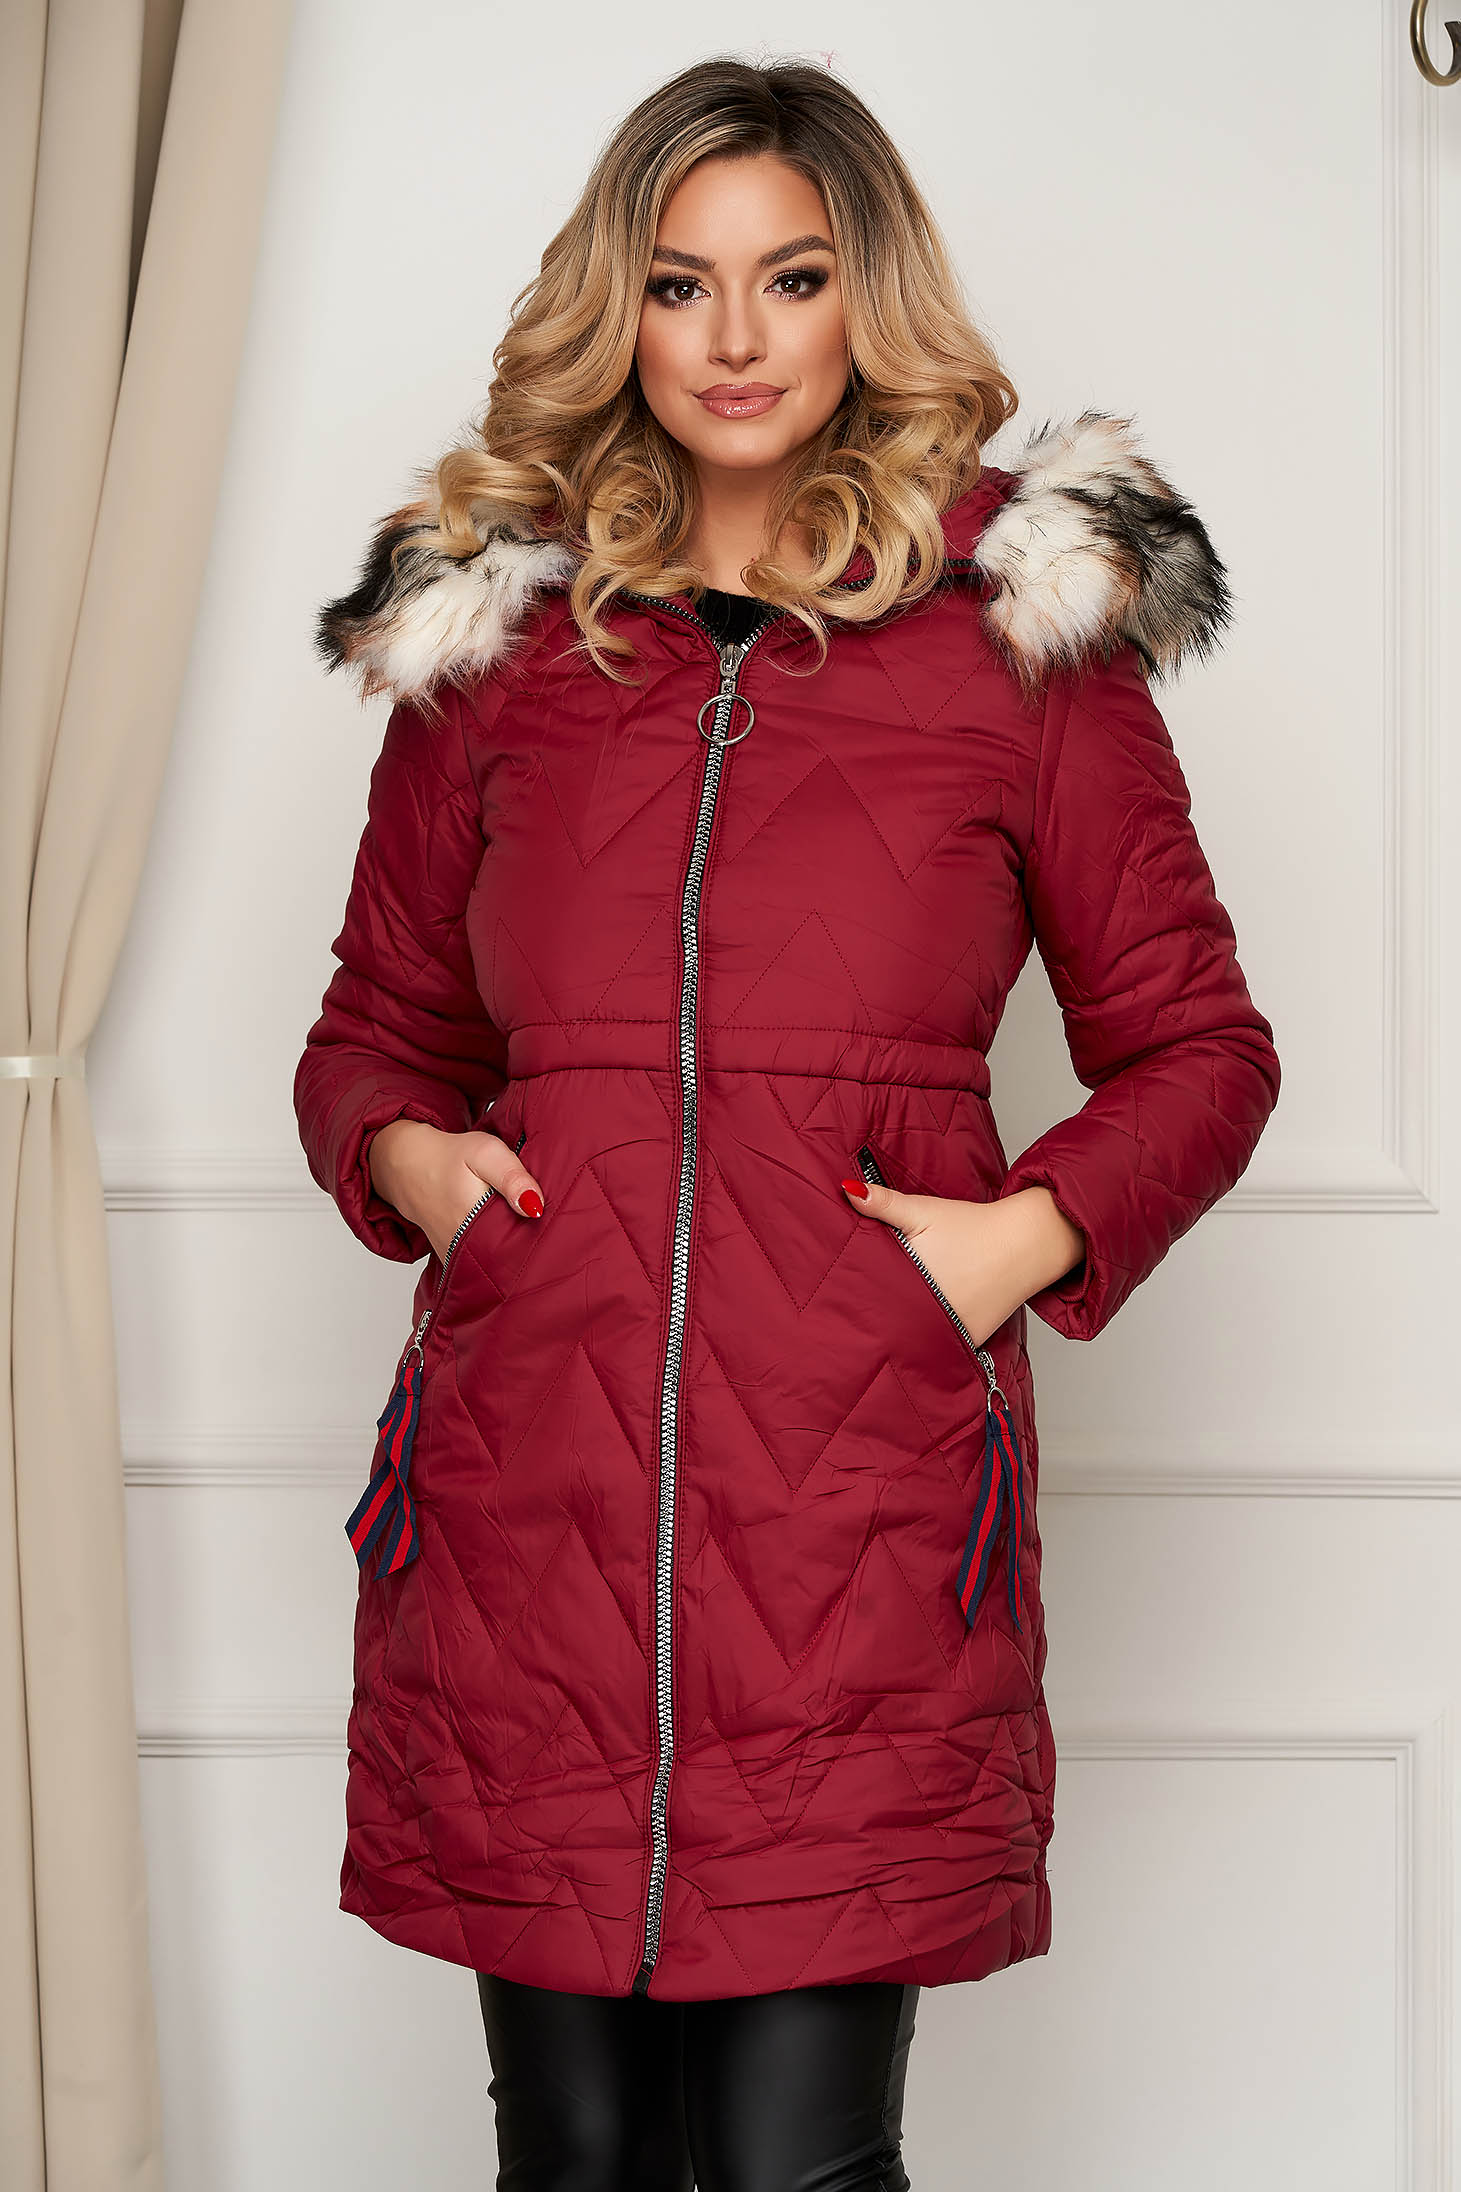 Burgundy jacket midi from slicker with faux fur lining with pockets